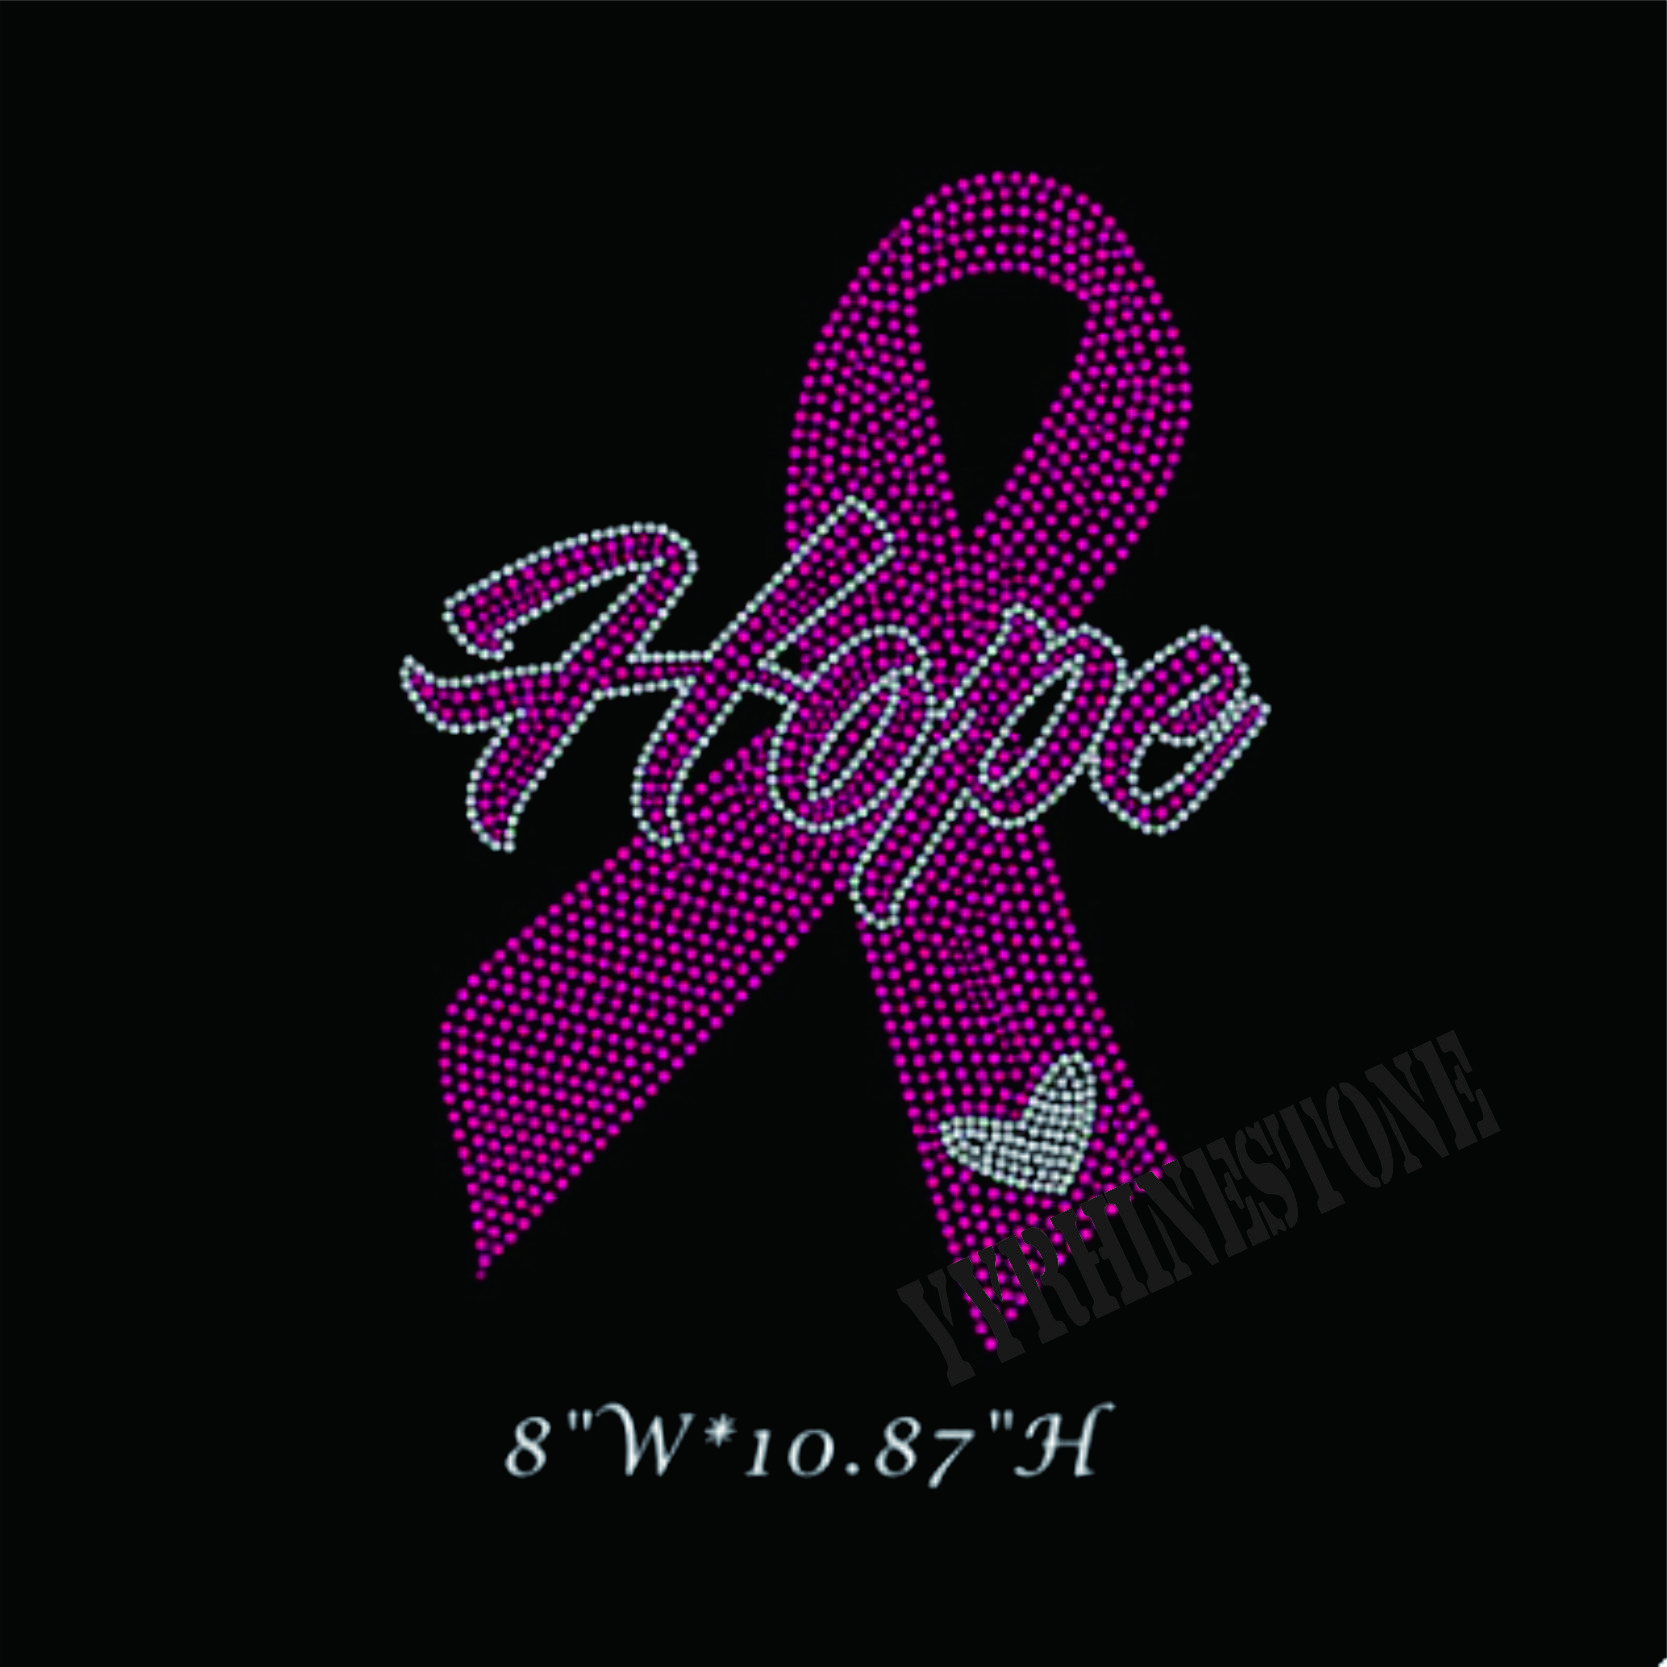 Hope & pink ribbon hotfix rhinestone transfers